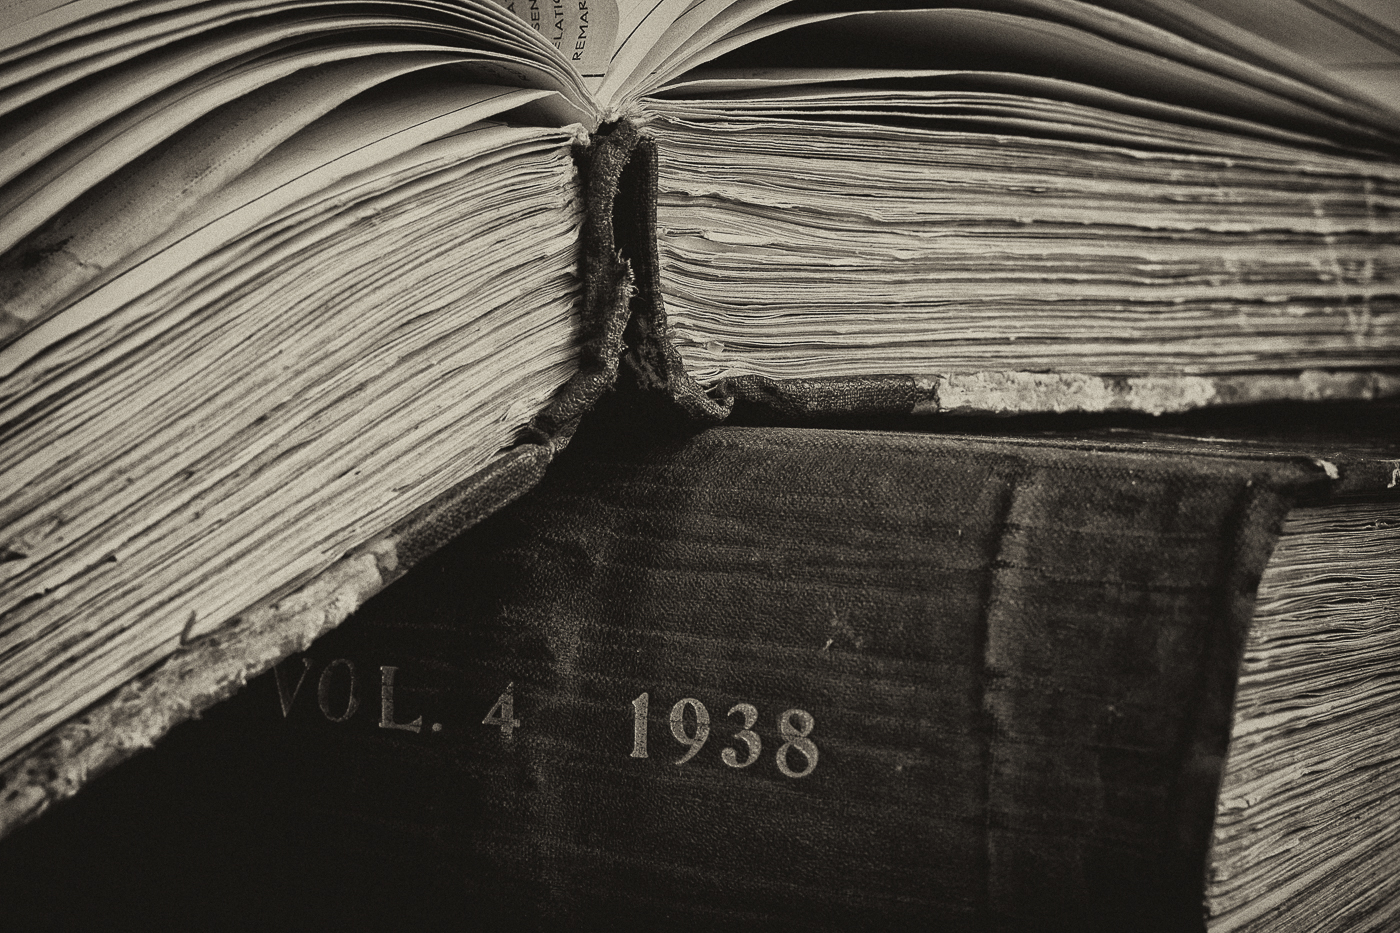 2nd Place -Monochrome Print - Old Medical Records - by Lesley Porter